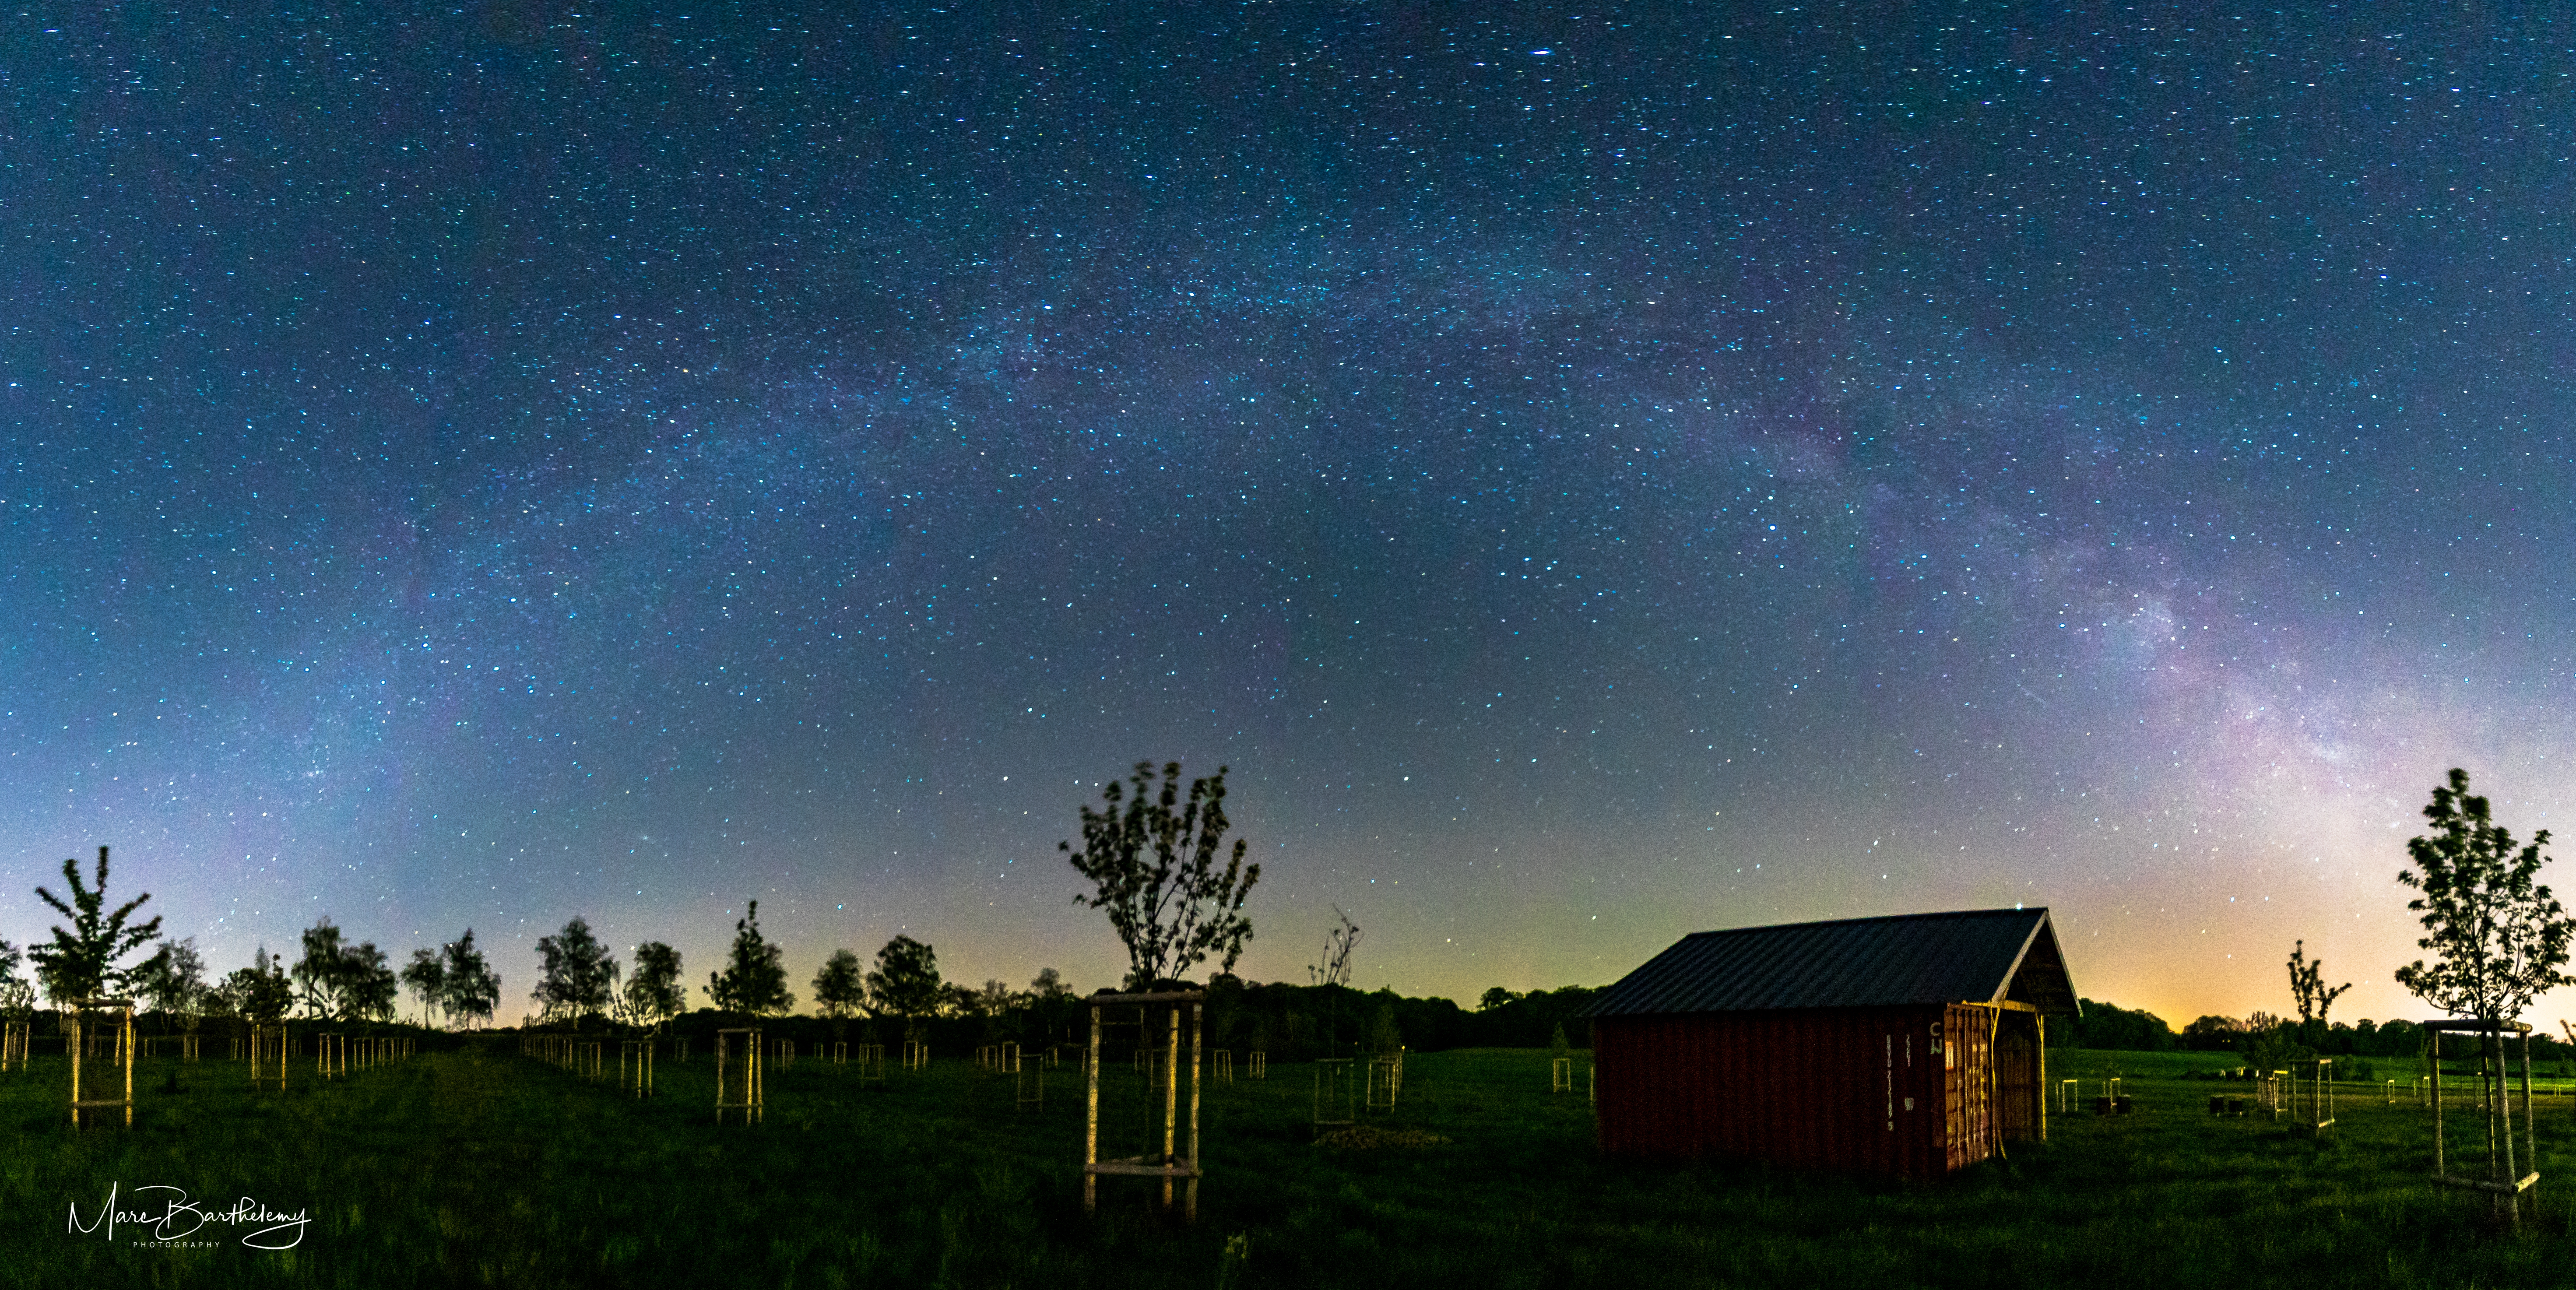 Welfringen Milky Way #3